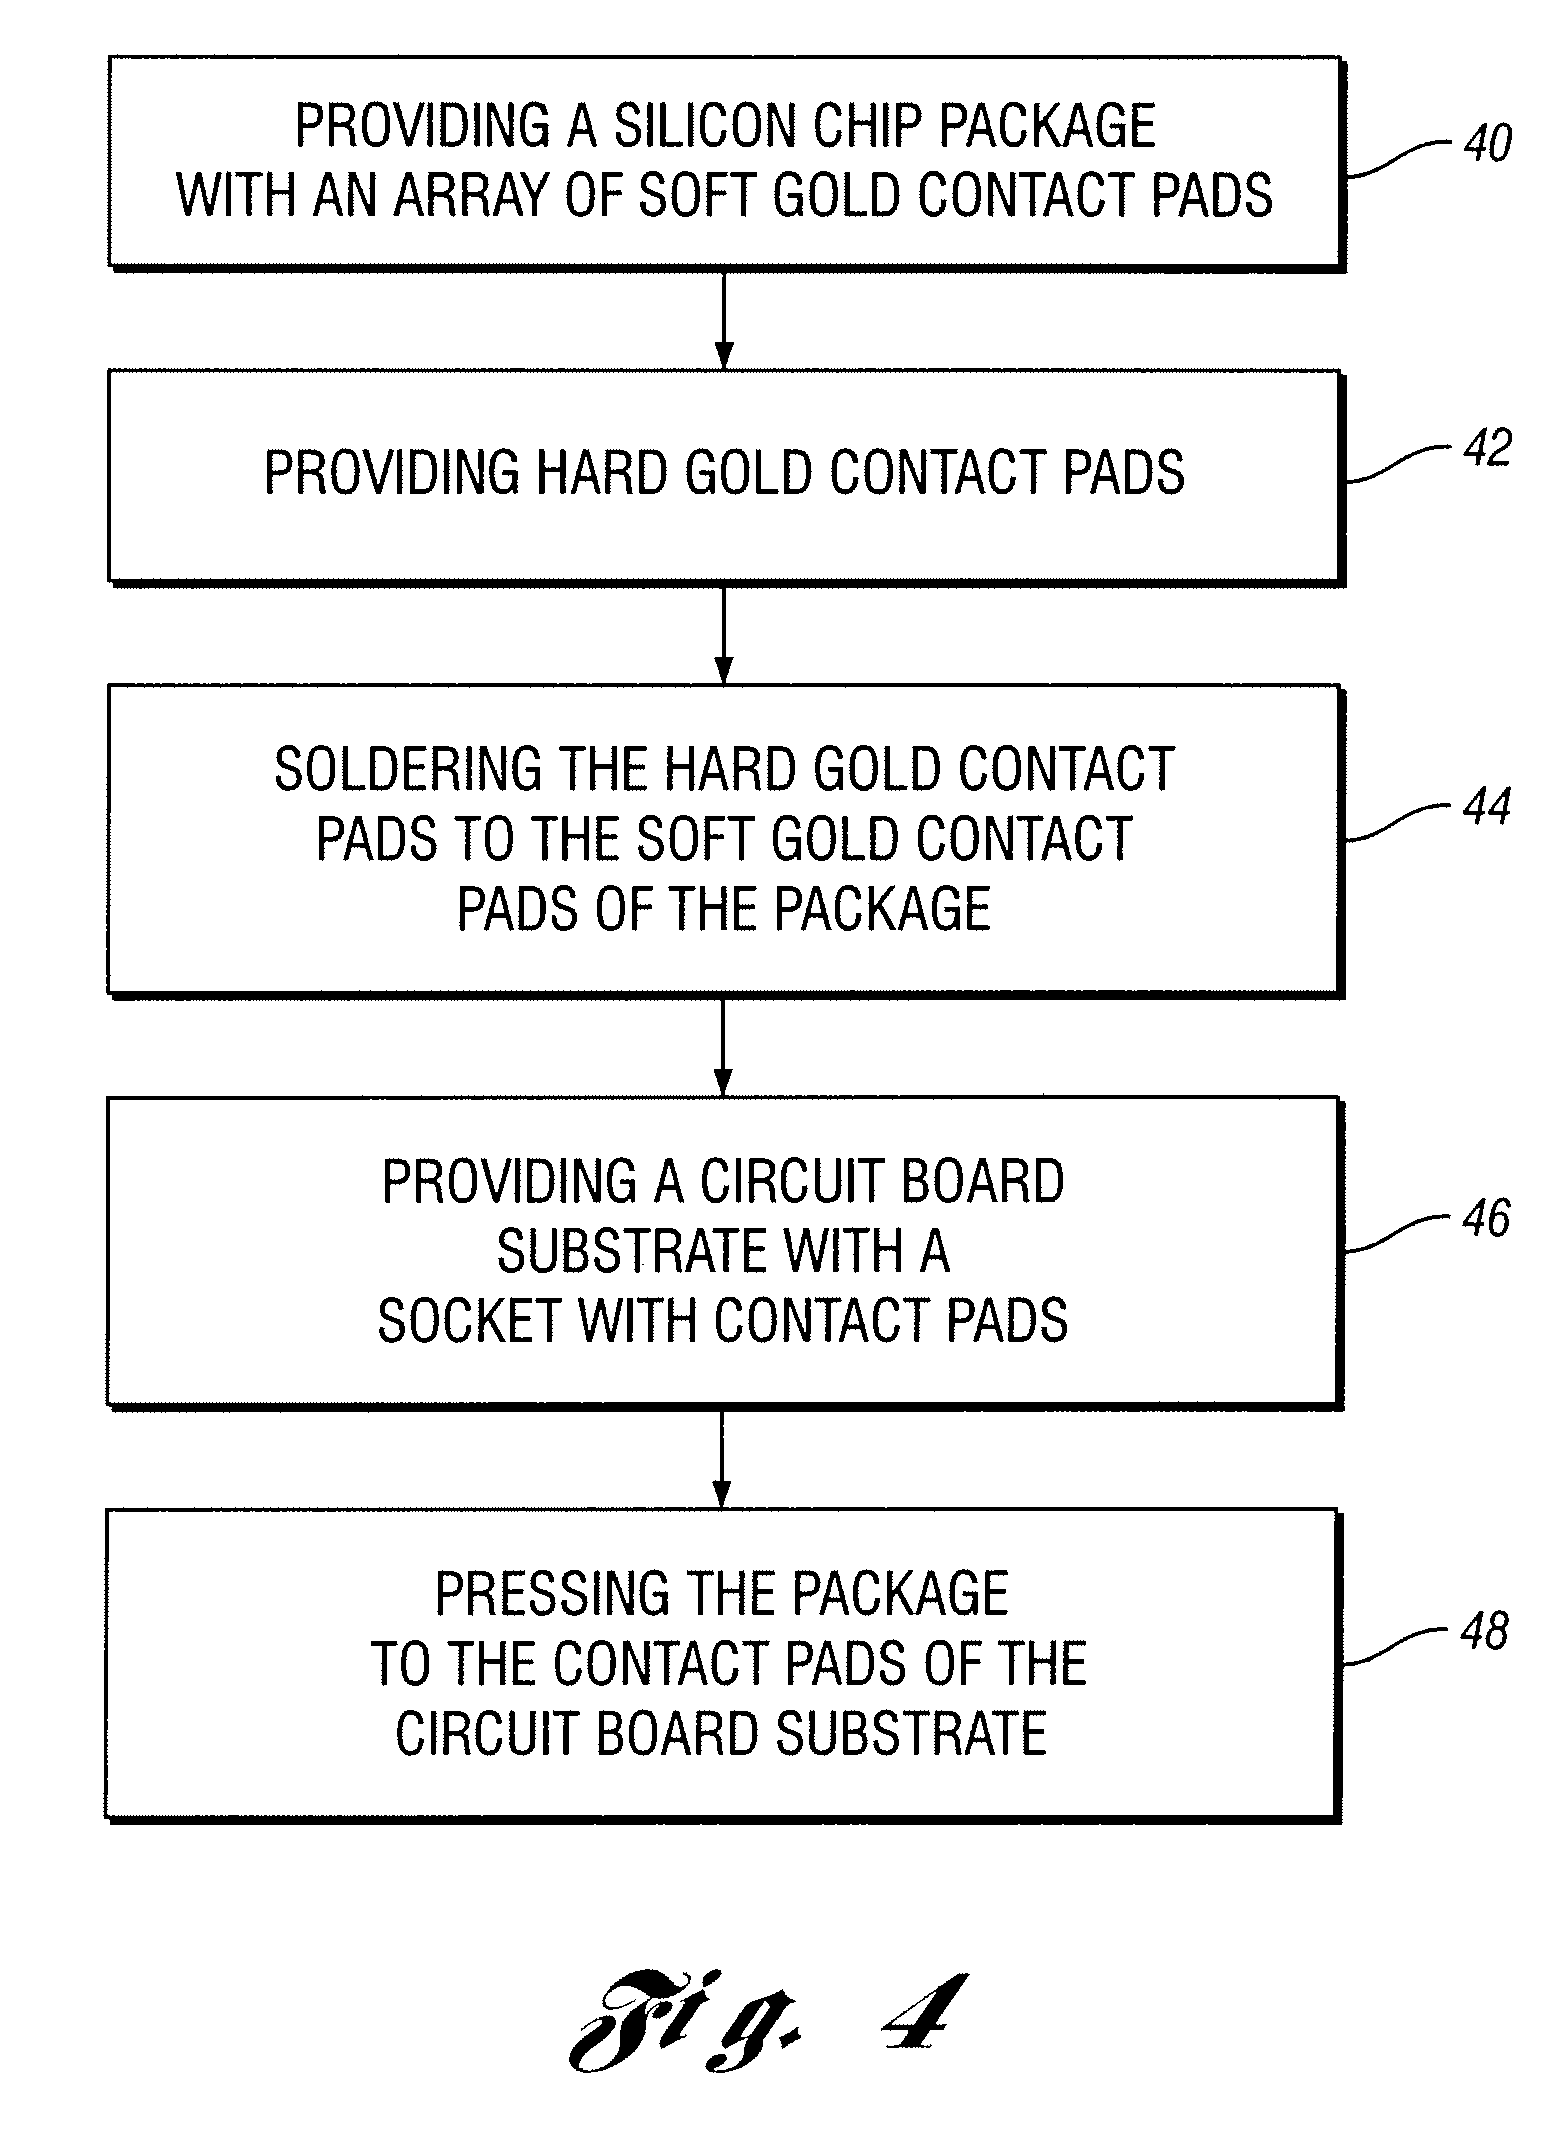 Patente Us20090302453 Contact Pads For Silicon Chip Packages Circuit Board Patent Drawing